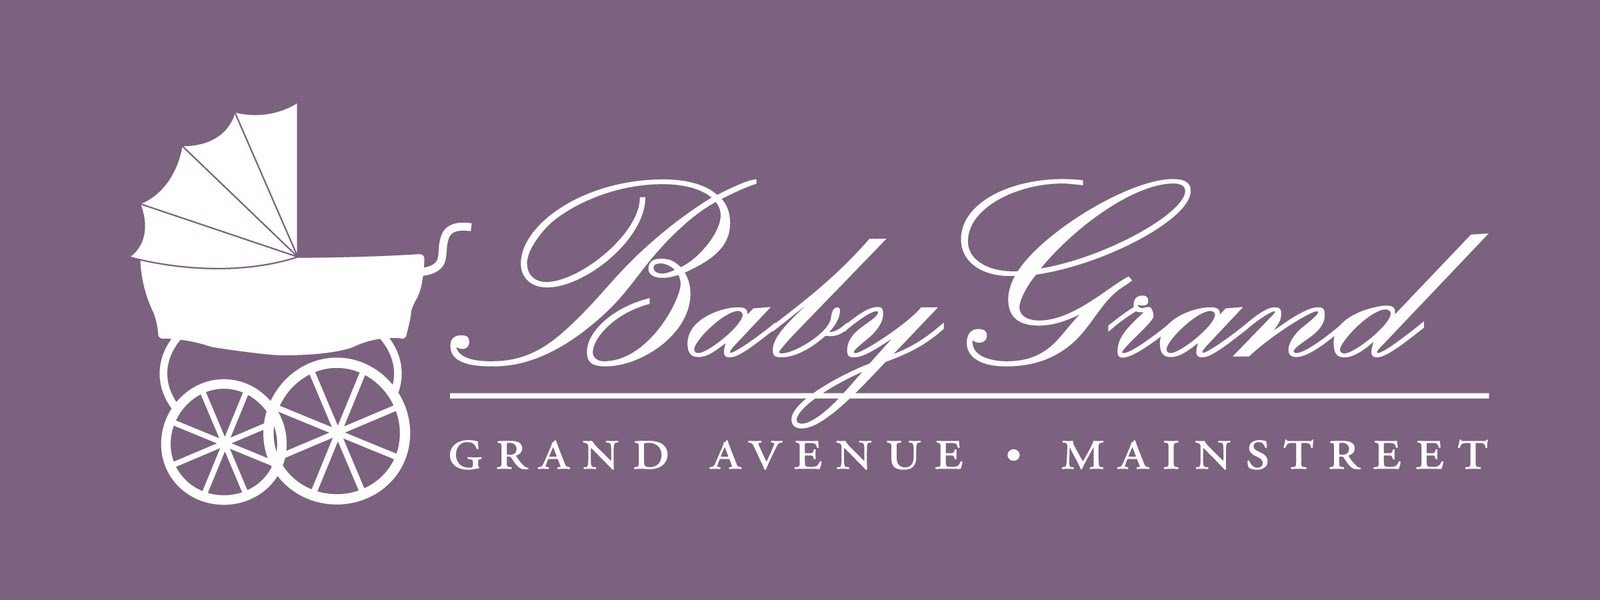 <p>Baby Grand was built on the foundation of knowledge, quality, safety, design, fair pricing and customer services. We've been proud to help expectant parents, families and their babies for over 29 years.</p>